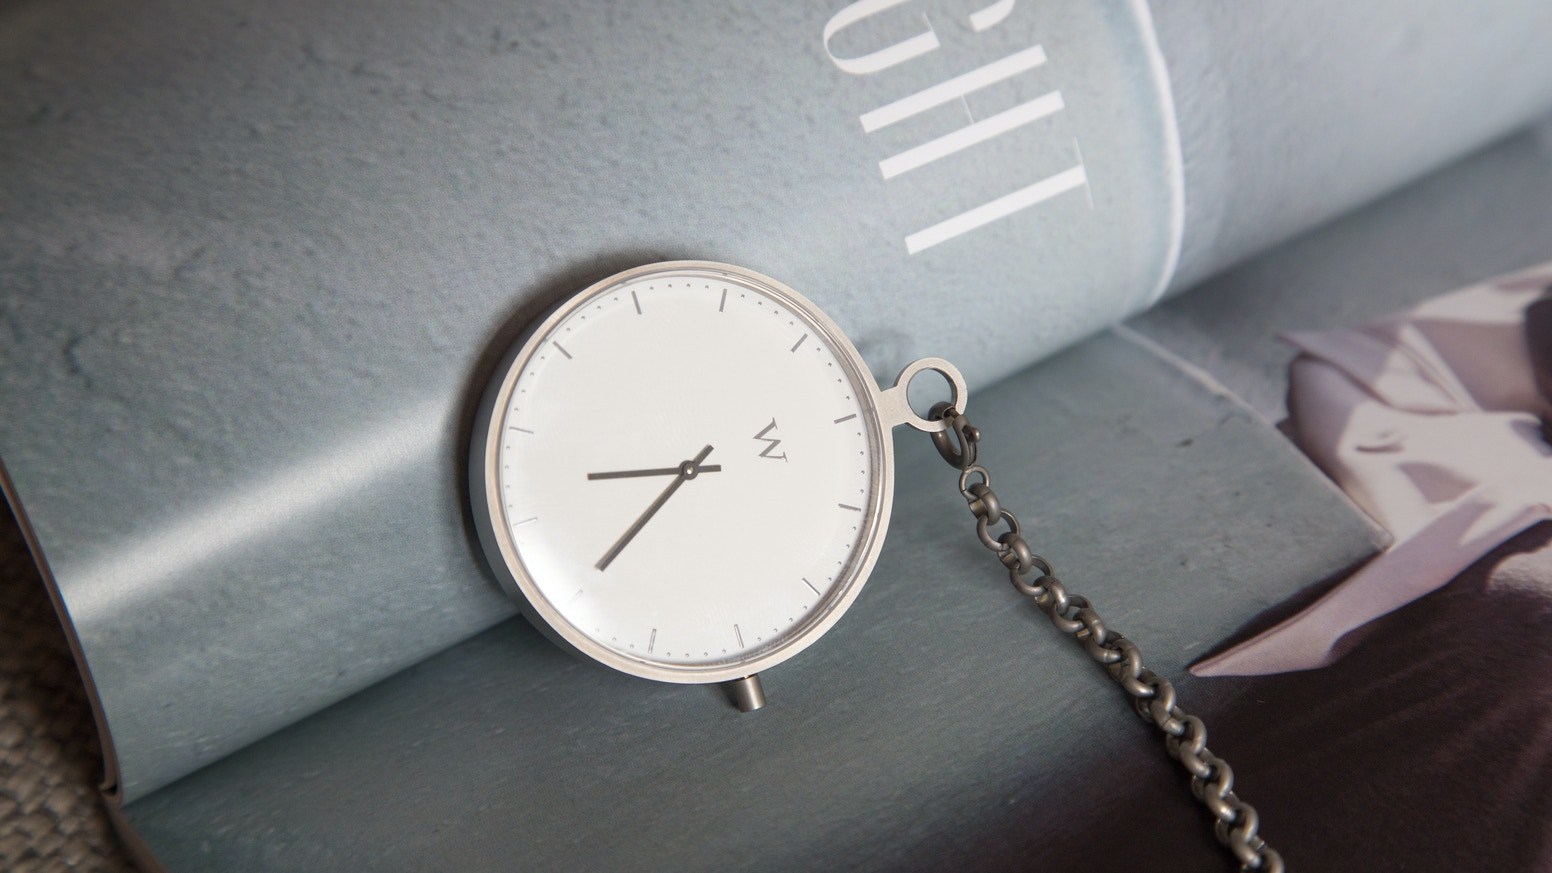 Our dream is to bring back to life the pocket watch. We need your support to make this a reality.